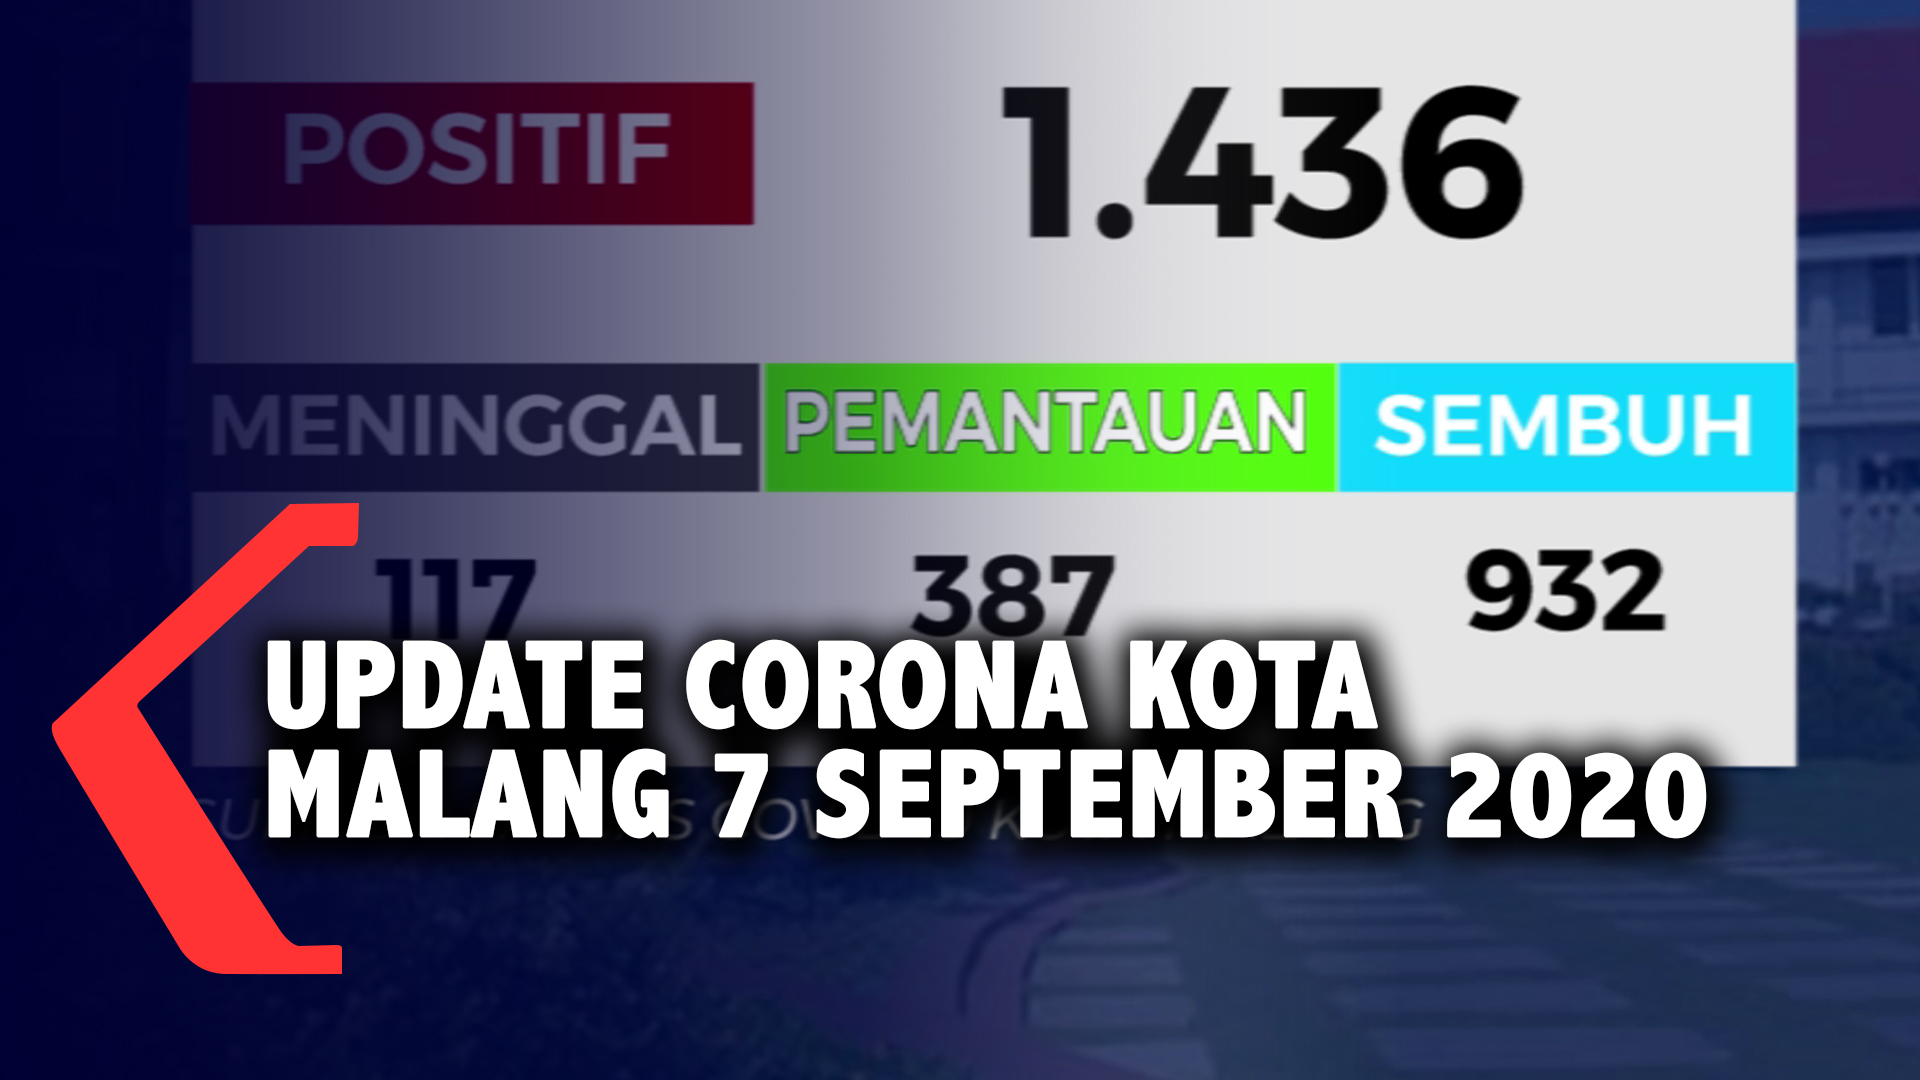 UPDATE CORONA KOTA MALANG 7 SEPTEMBER 20201599487899